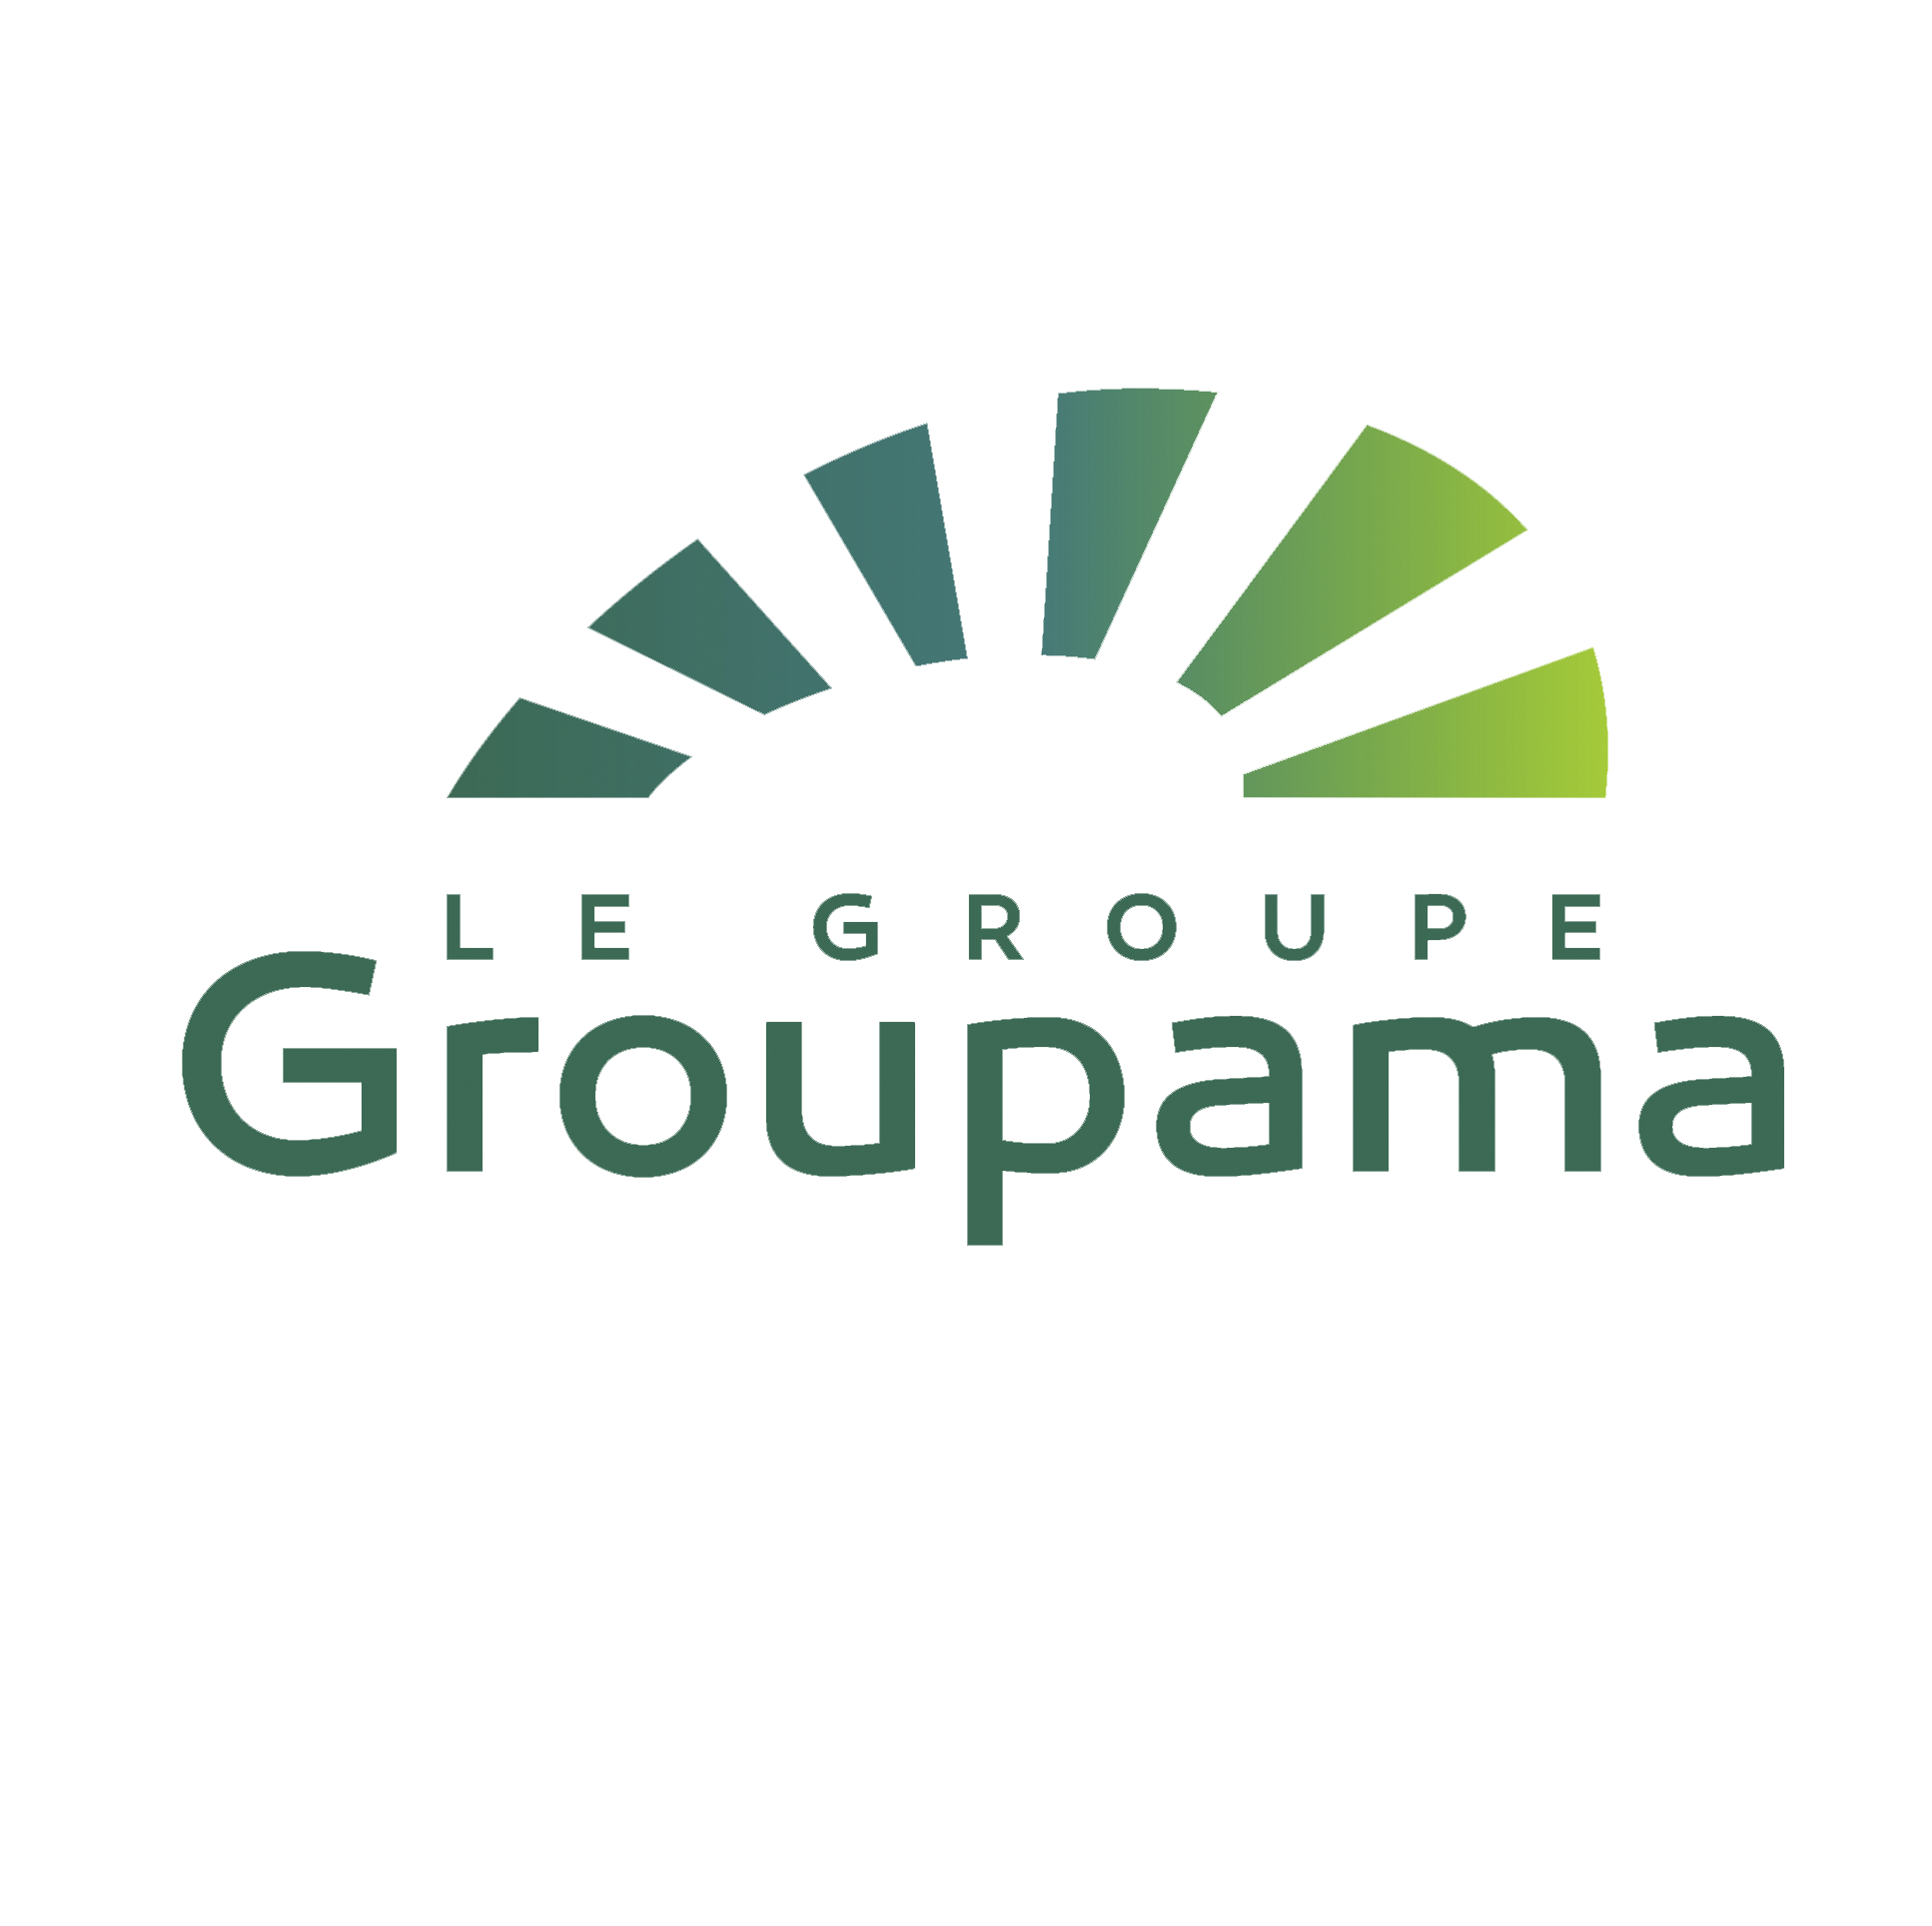 AS-Site-Home-Identite-Groupama-150806.png